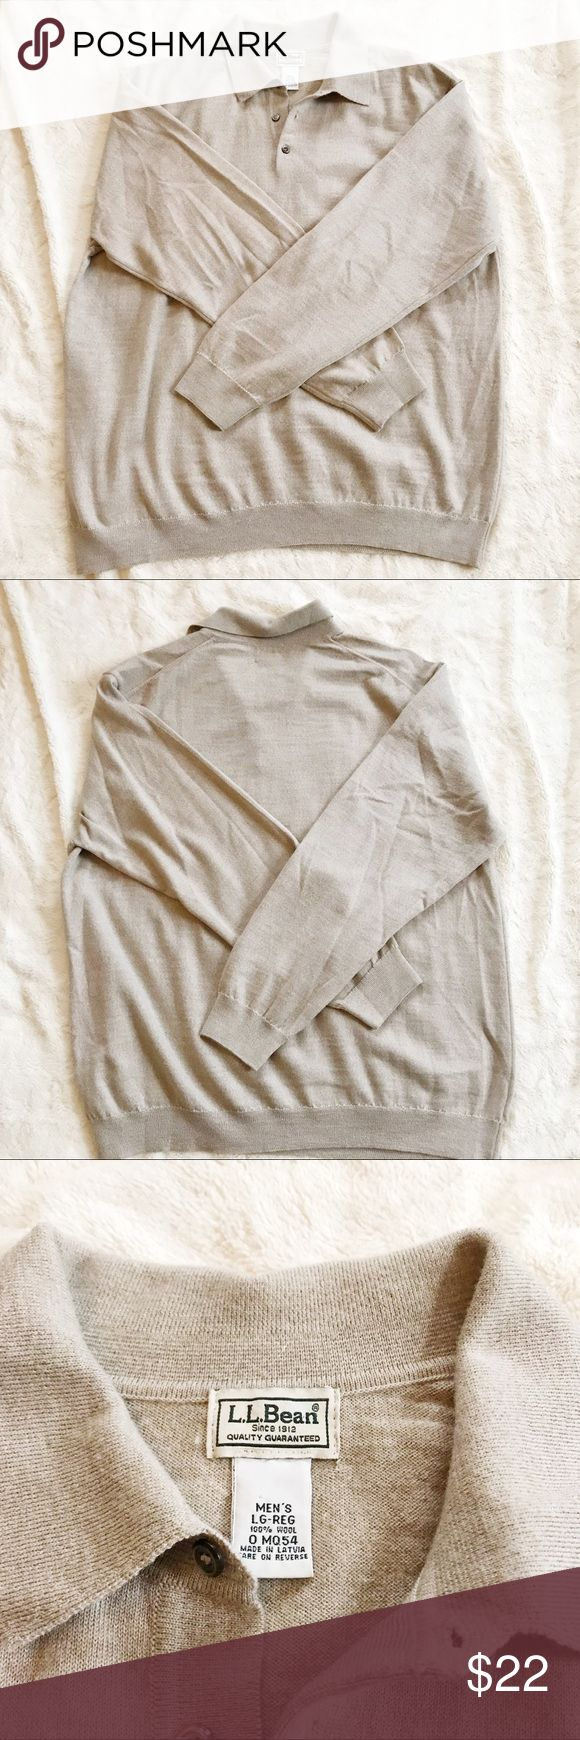 """LL Bean Men's 100% Wool Polo Pullover Sweater LL Bean Men's tan pullover Polo long sleeved sweater with buttons. 100% wool. Minimal to no signs of wear. Great quality clothing. Length: 27.5"""" Armpit to armpit: 24"""" L.L. Bean Sweaters"""